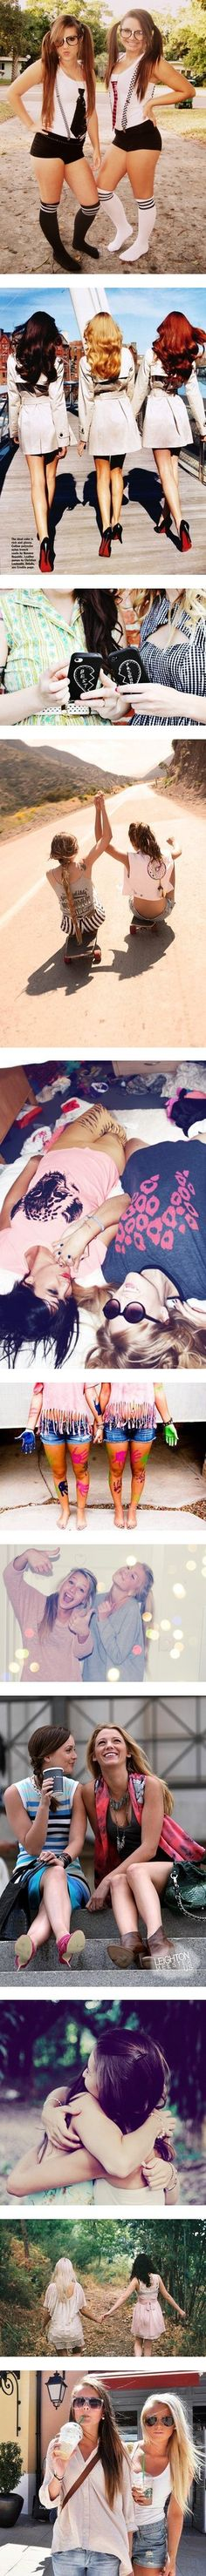 """Best Friends"" by modee-uae ❤ liked on Polyvore"